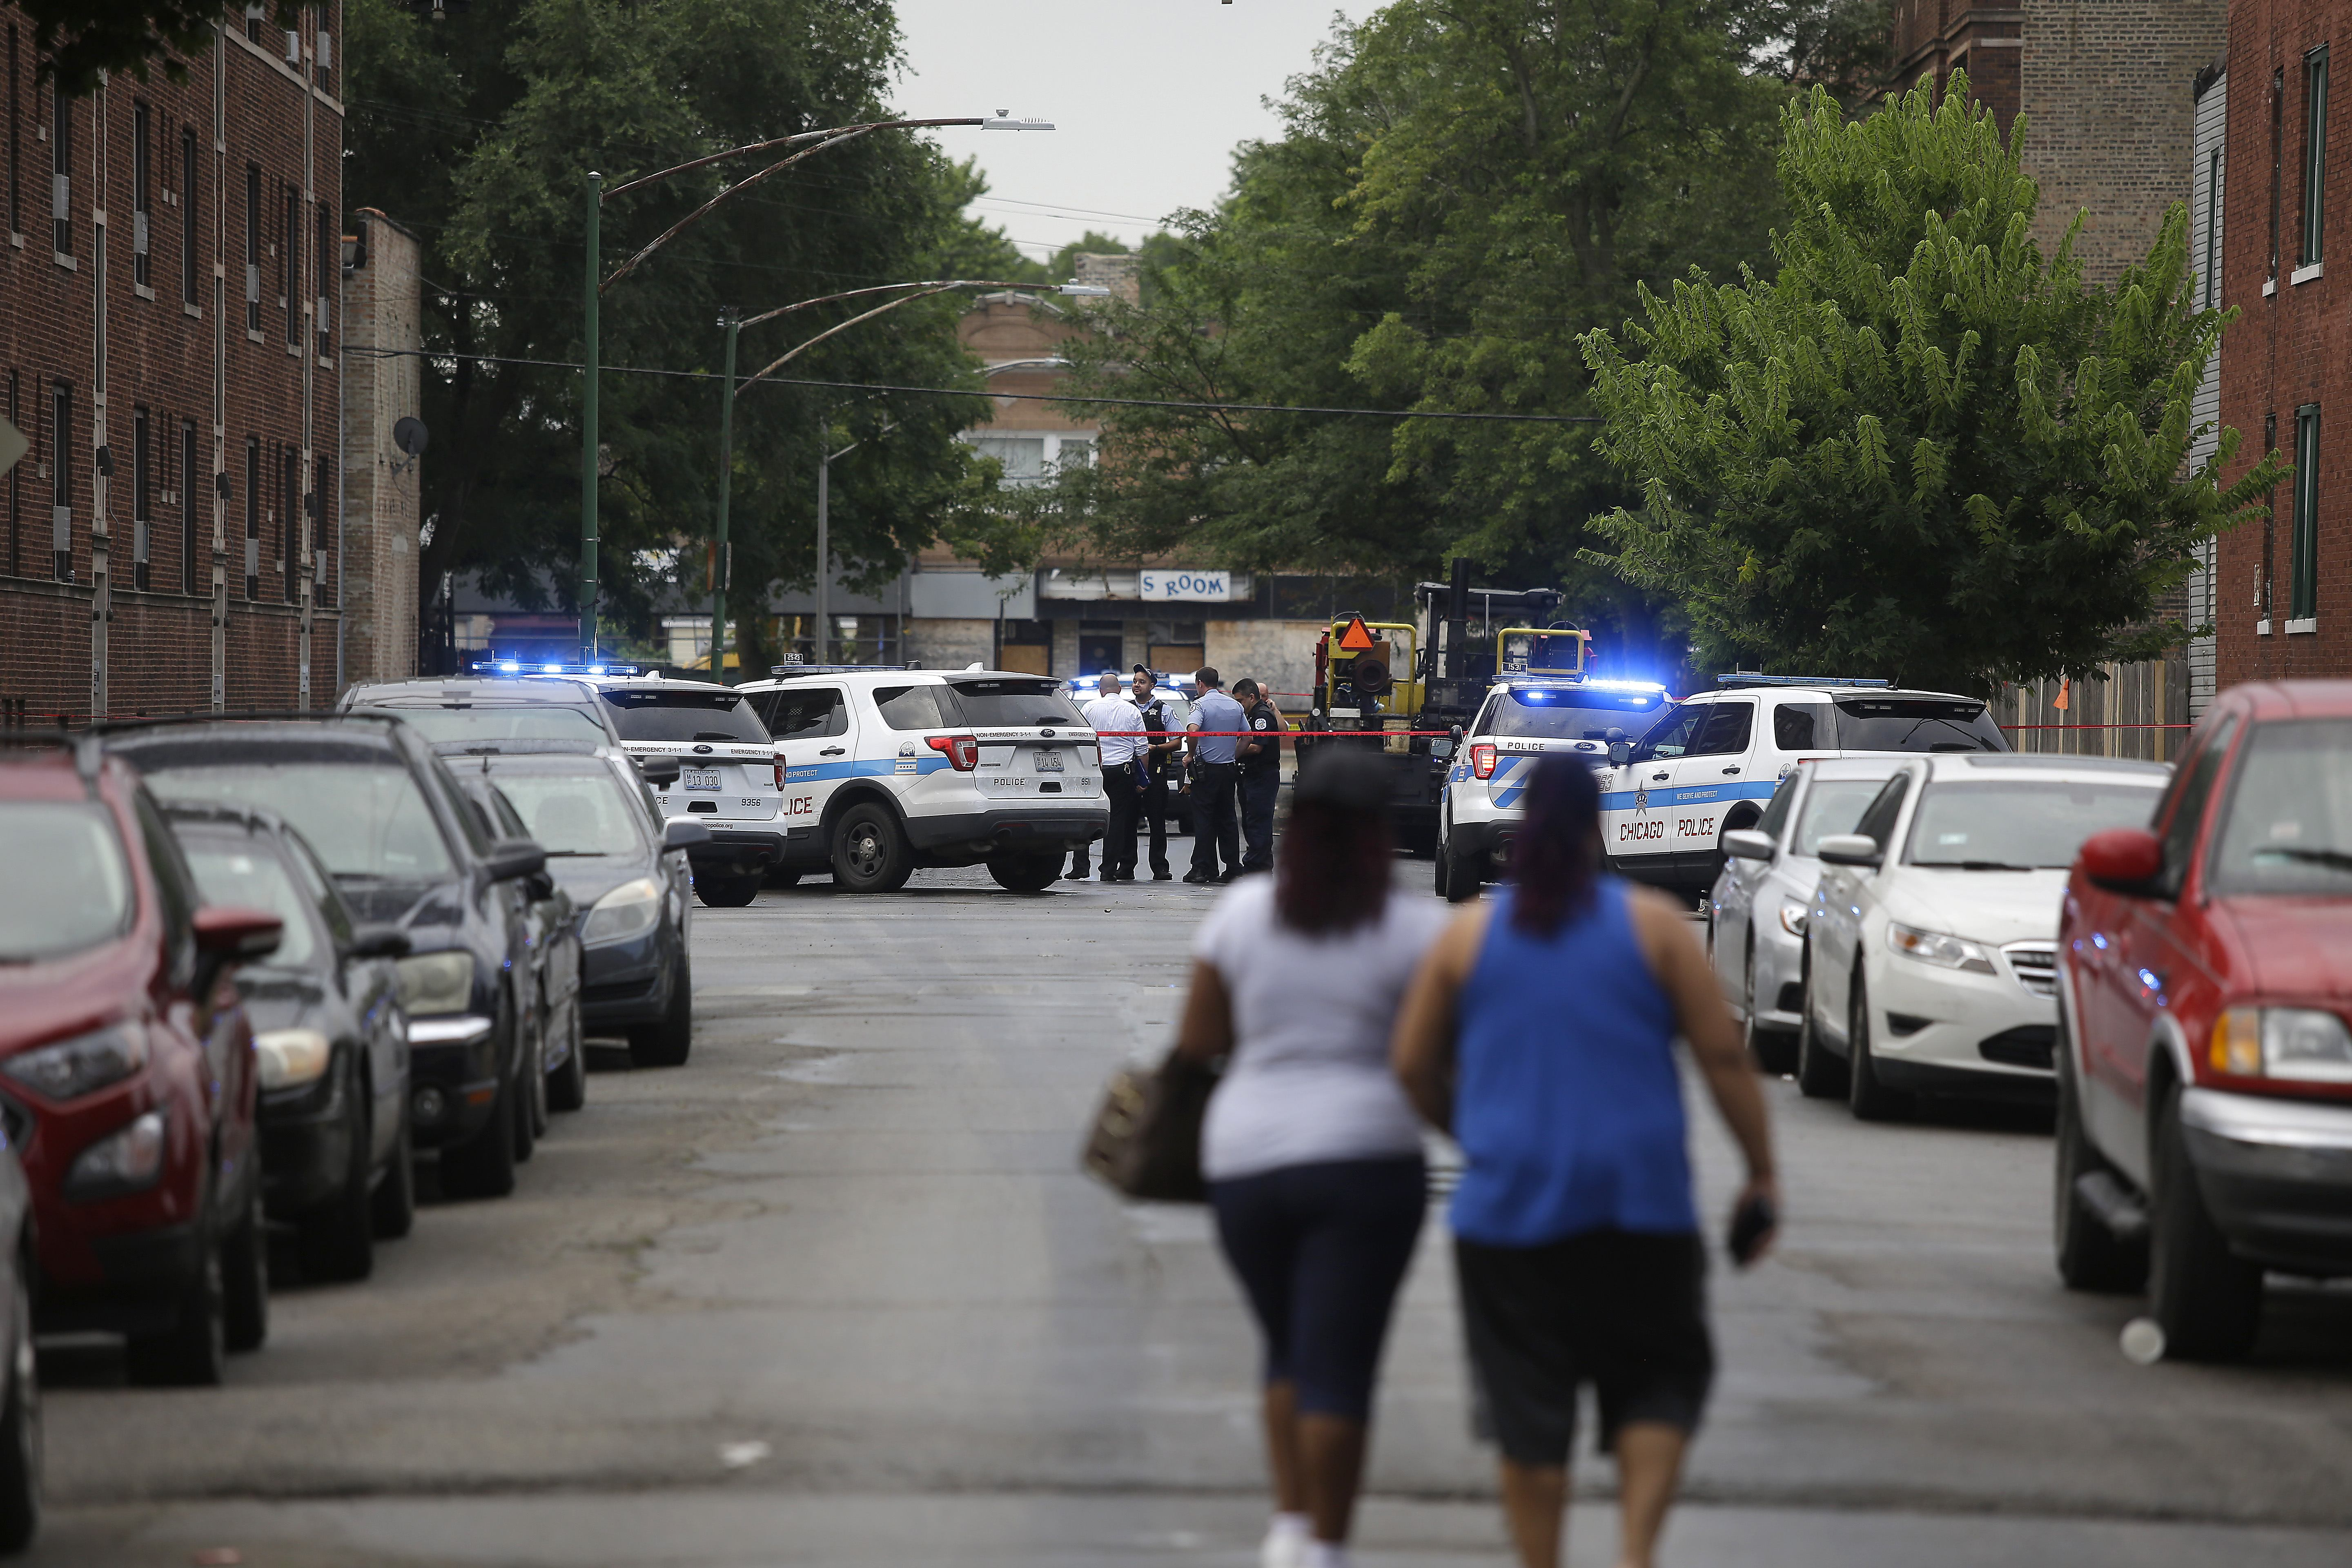 Prayers Up! At Least 75 People Shot In Chicago This Weekend Alone